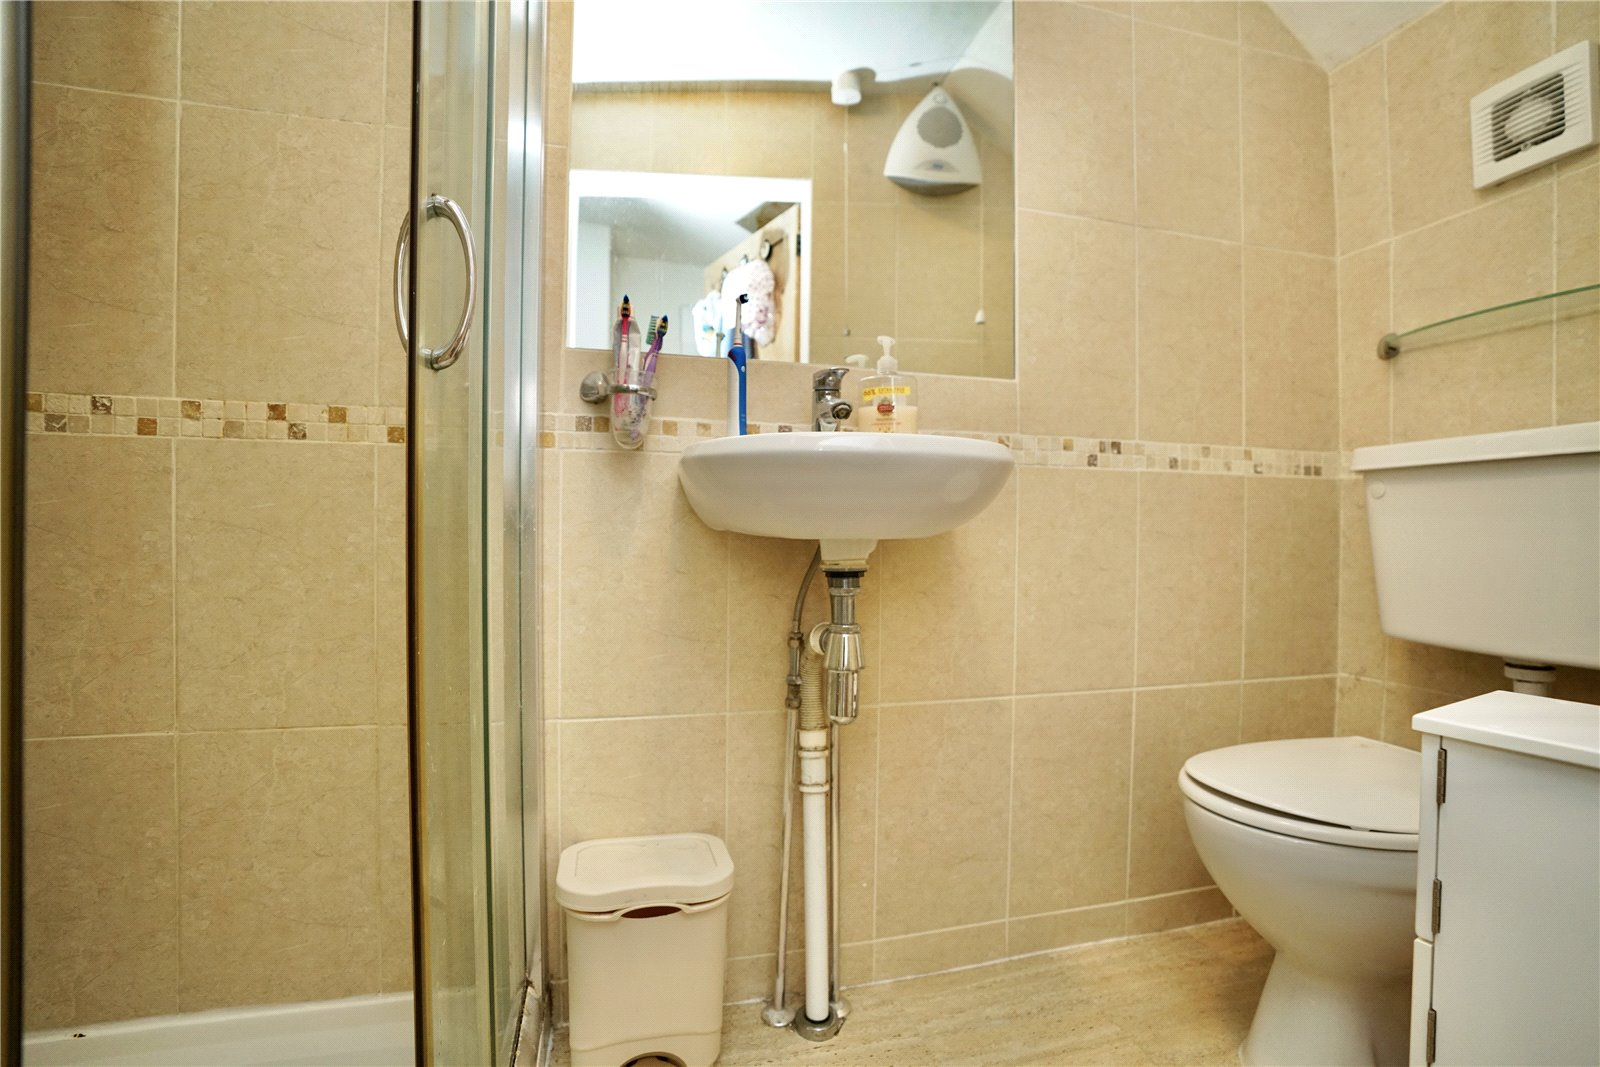 4 bed for sale in The Town, Great Staughton  - Property Image 16